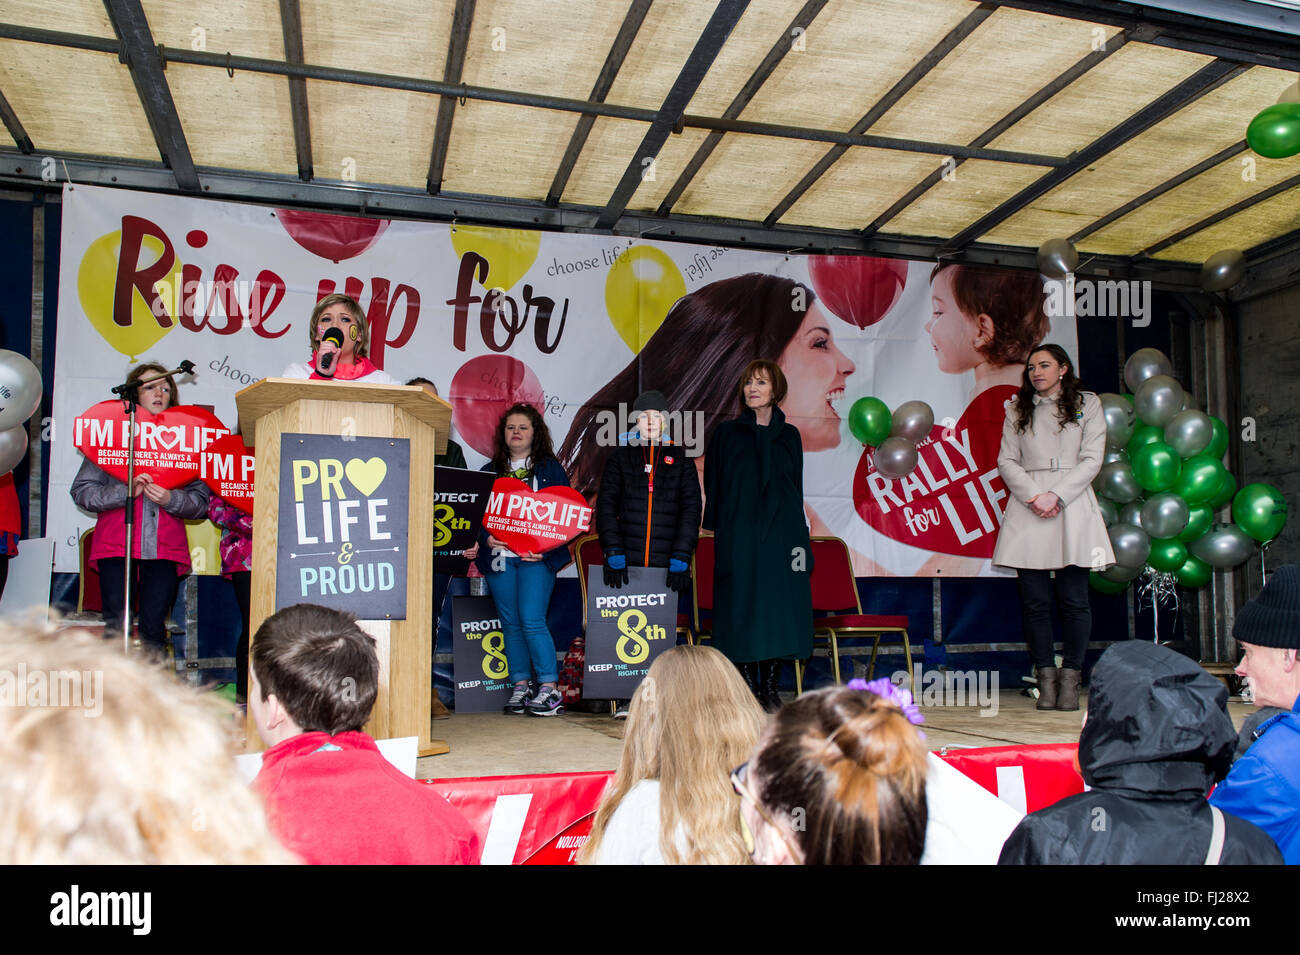 Young woman speaks at a pro-life rally in Cork, Ireland - Stock Image